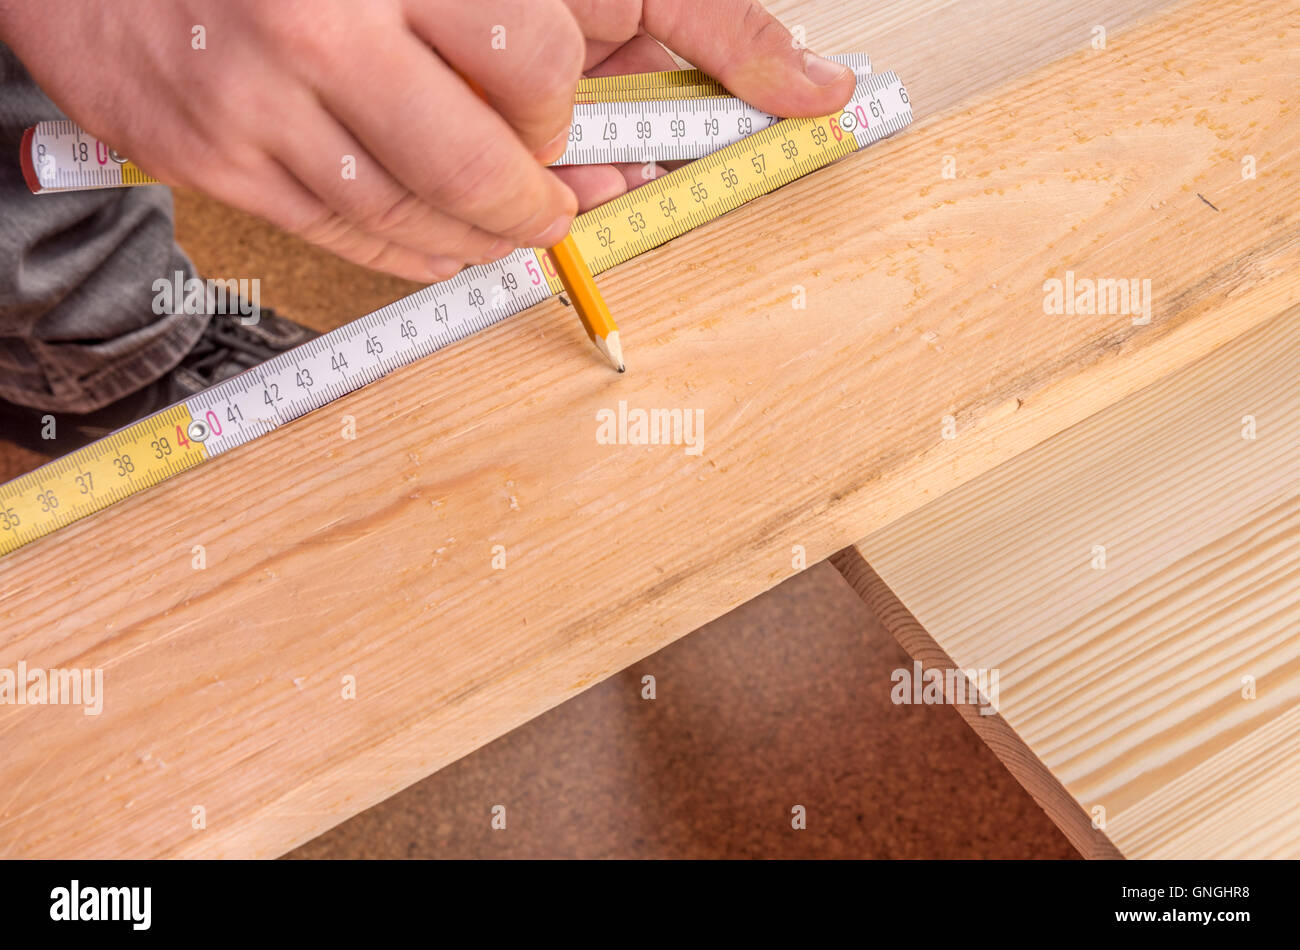 Carpenter's hands measuring a wooden board - Stock Image